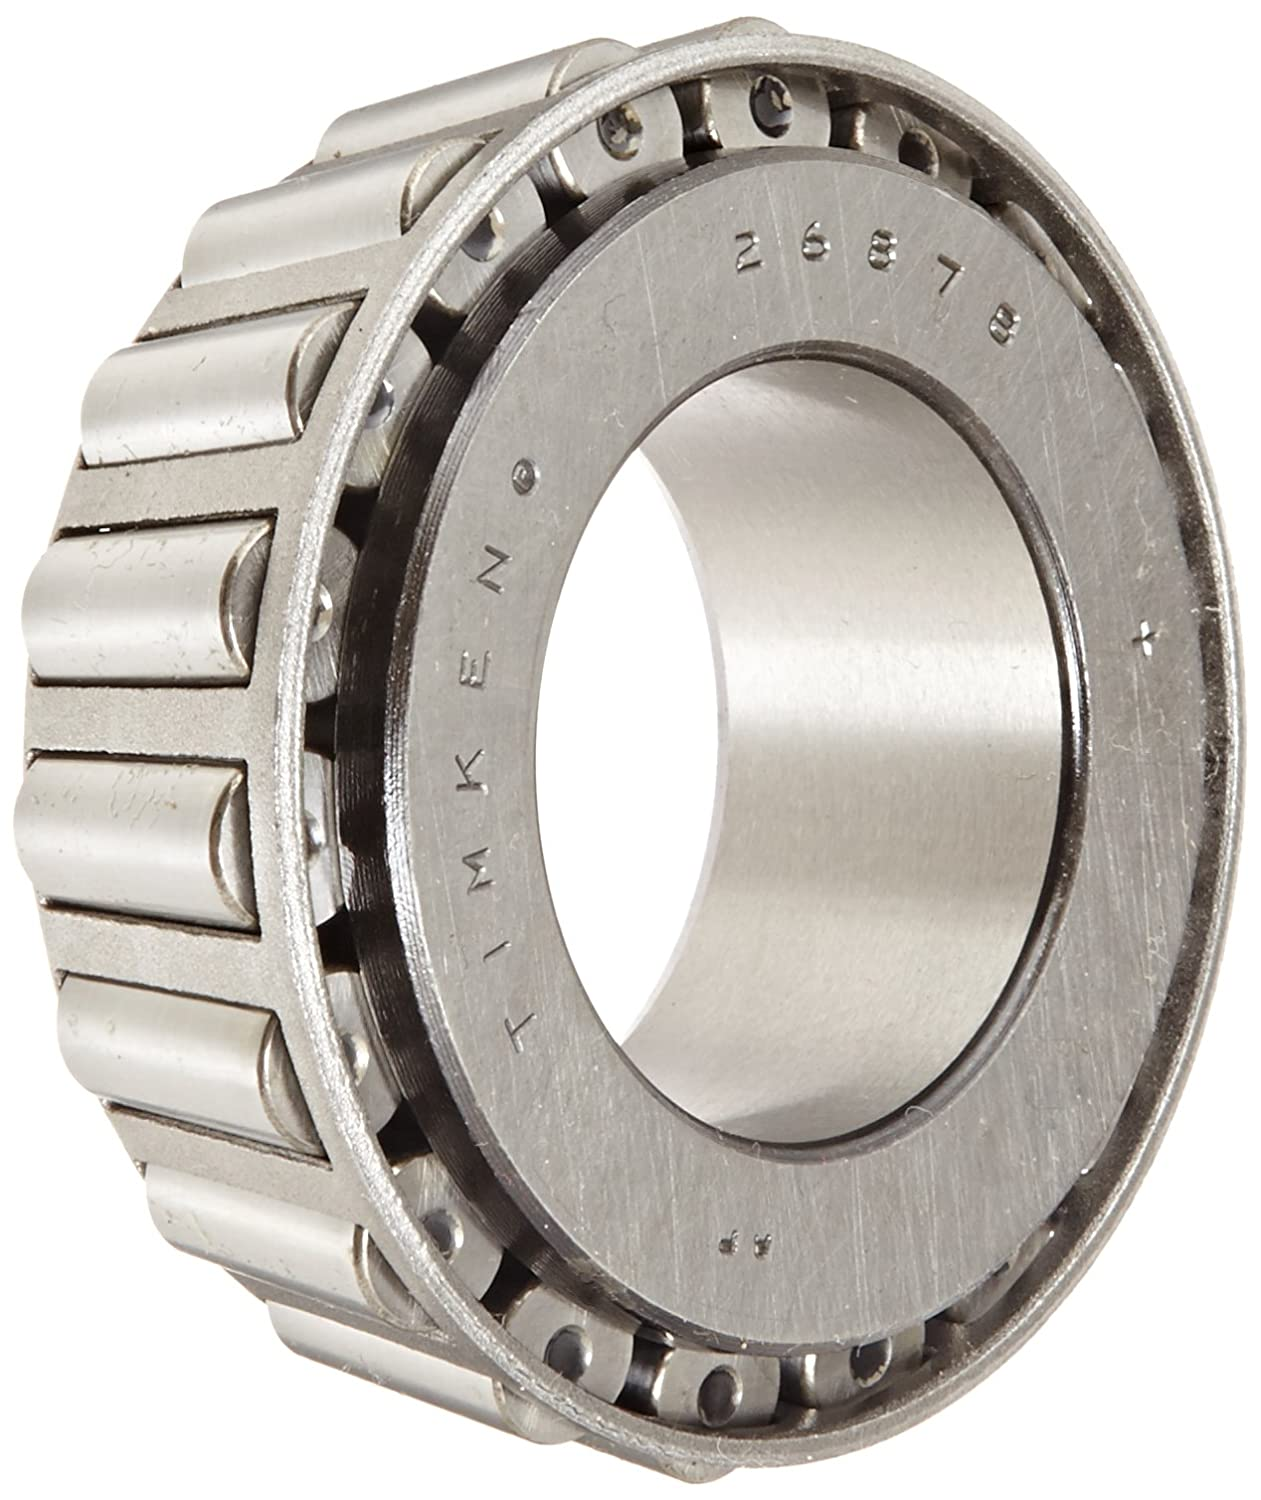 Timken 26878 Tapered Roller Bearing, Single Cone, Standard Tolerance, Straight Bore, Steel, Inch, 1.5000